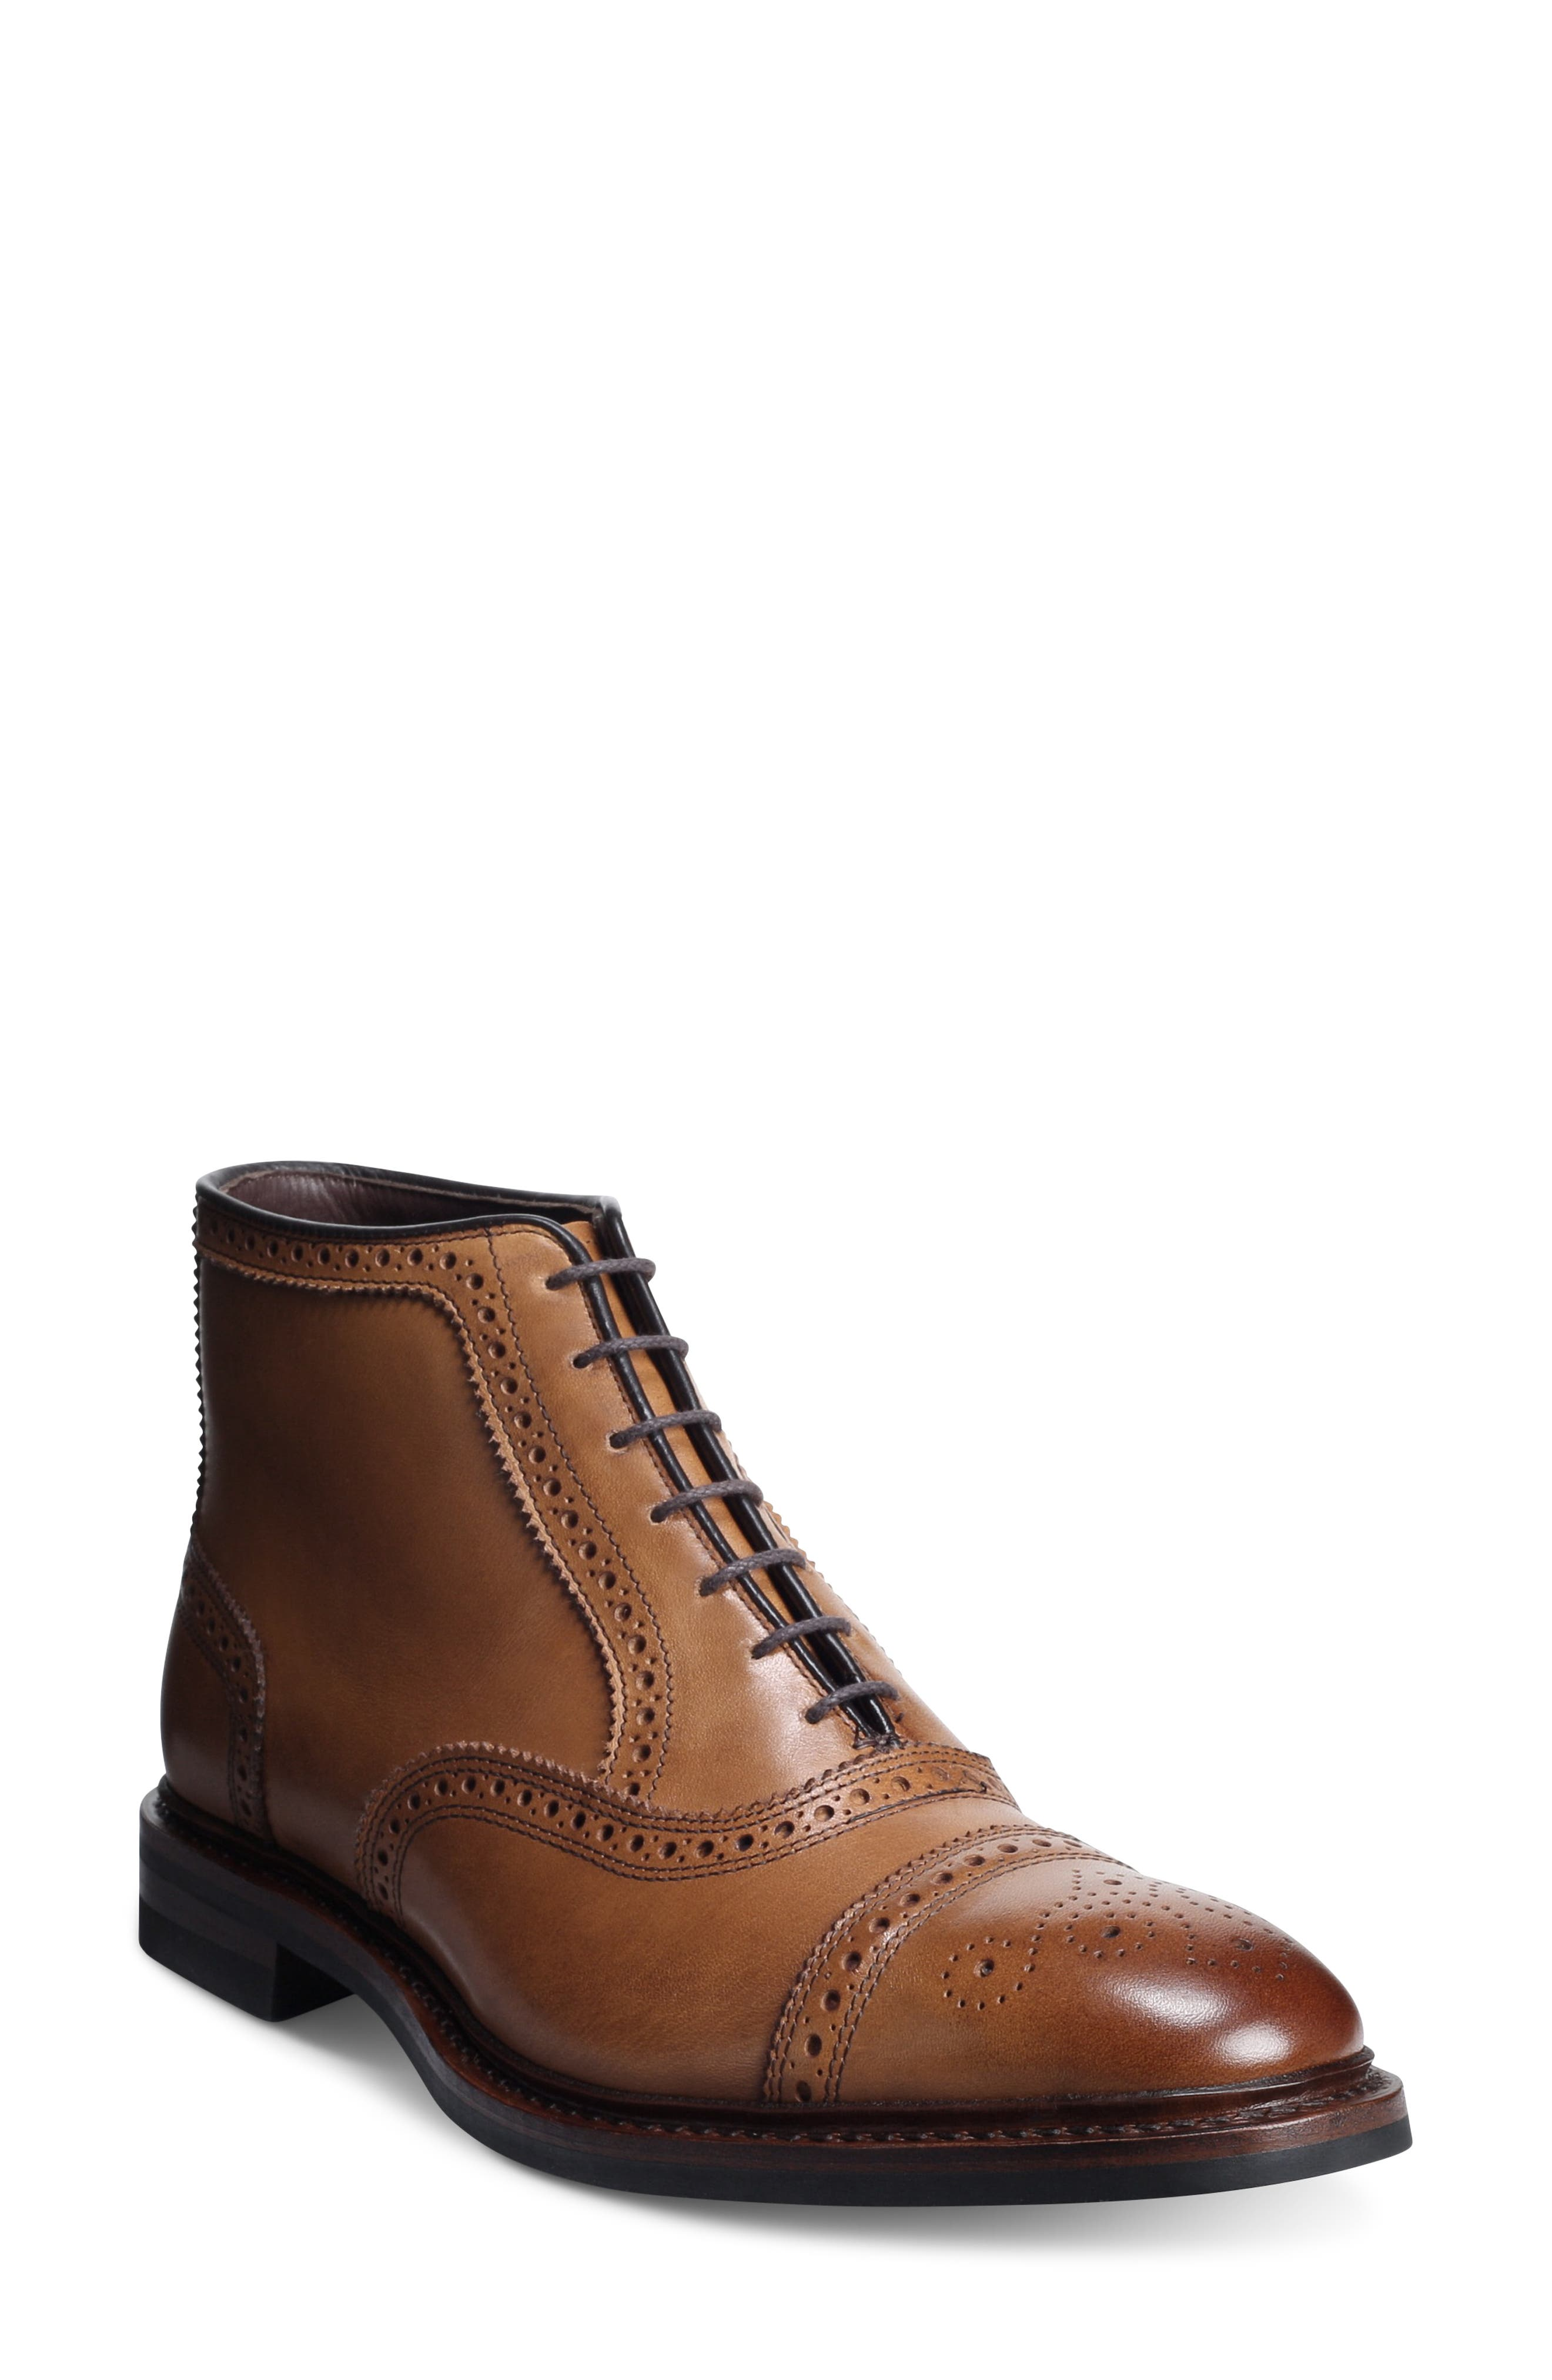 Handcrafted in America, this chukka boot steps it up a notch with serrated brogued seams and a medallion wingtip toe. Allen Edmonds has been making shoes in America for nearly 100 years using fine leathers, a 212-stepcrafting process and 360 degree Goodyear welt construction to ensure a high-quality product, every time. Style Name: Allen Edmonds Hamilton Wingtip Chukka Boot (Men). Style Number: 5939610. Available in stores.